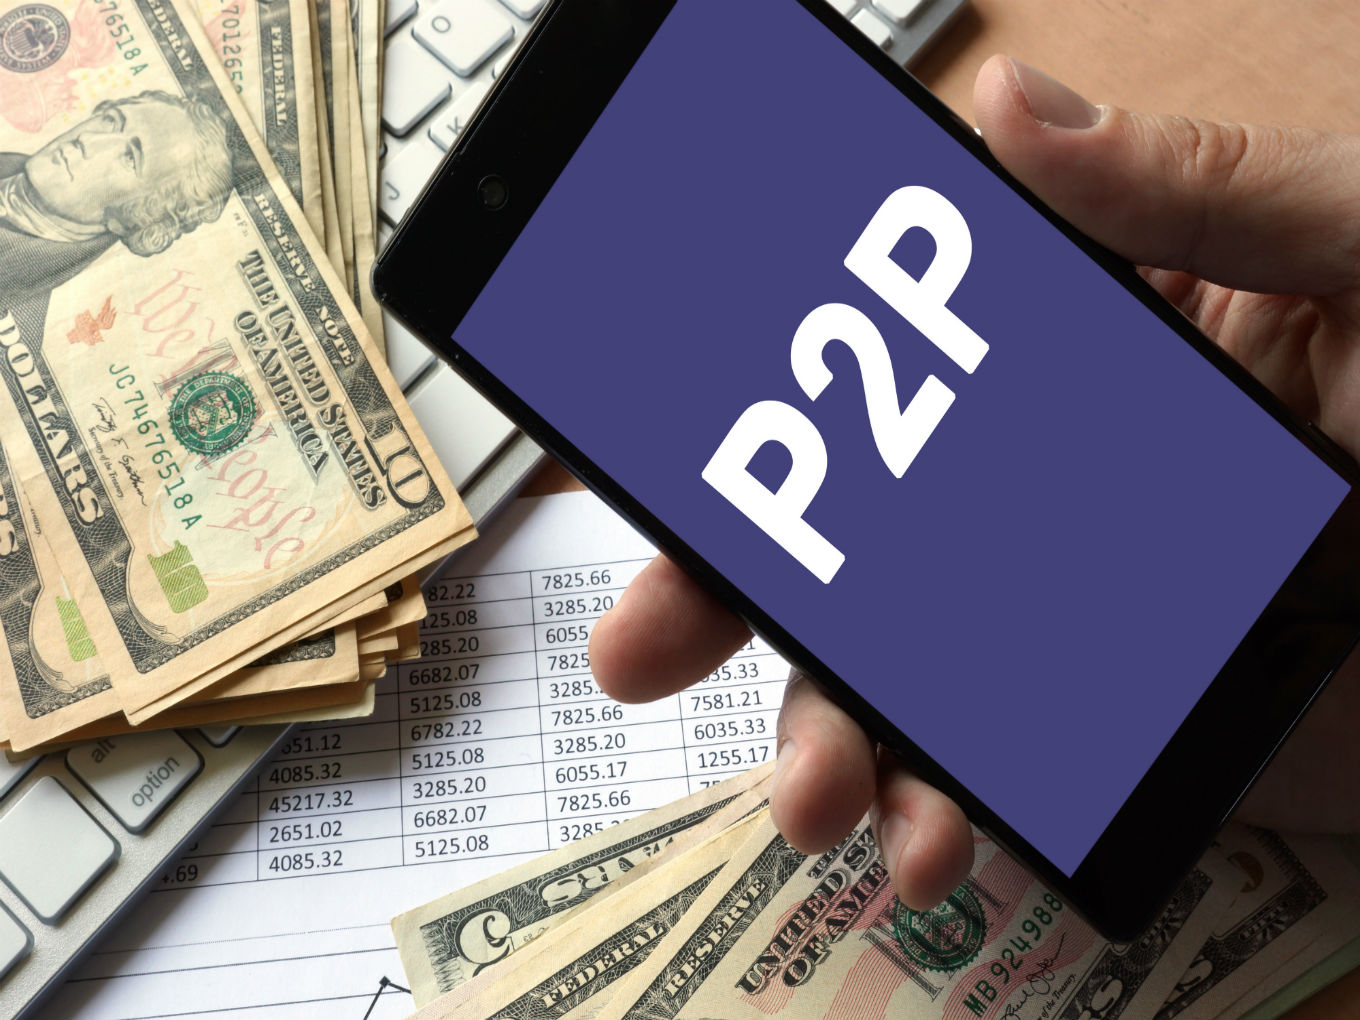 P2P lending and India's credit woes: How the RBI has simplified access to finance for the country's masses through the recognition of the P2P lending model